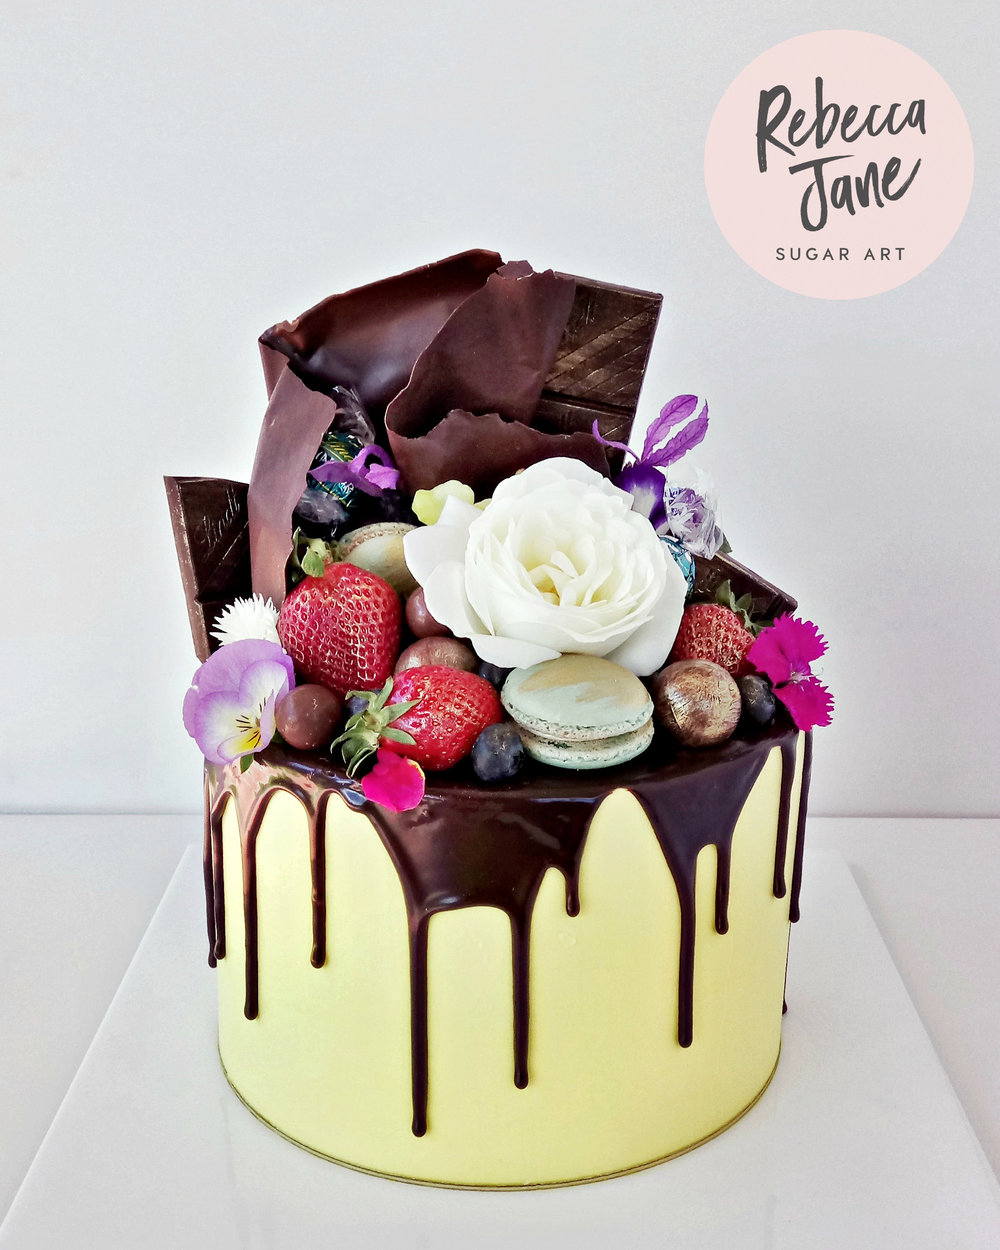 Rebecca Jane Sugar Art - yellow drip cake with chocolate sail, berries, macarons and flowers